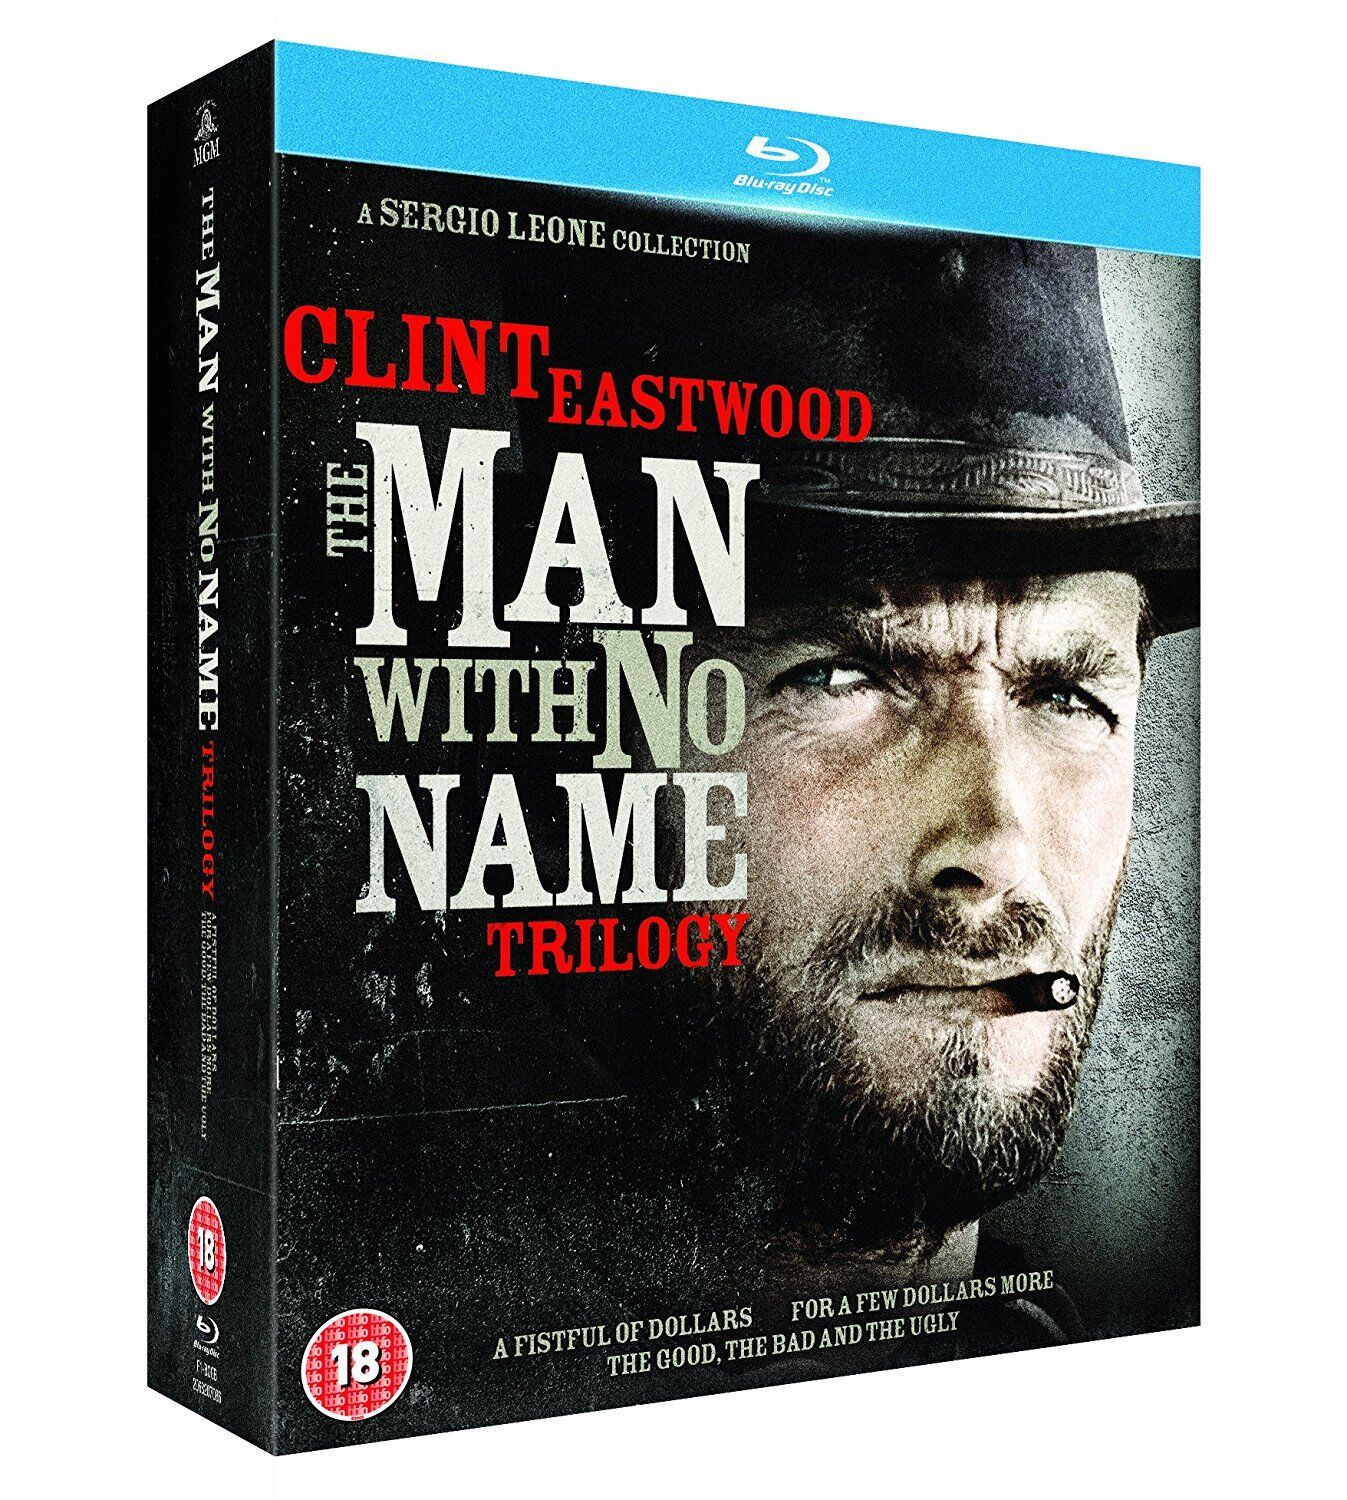 Купить The Man With No Name Trilogy (Clint Eastwood) Blu-Ray BRAND NEW Free Shipping